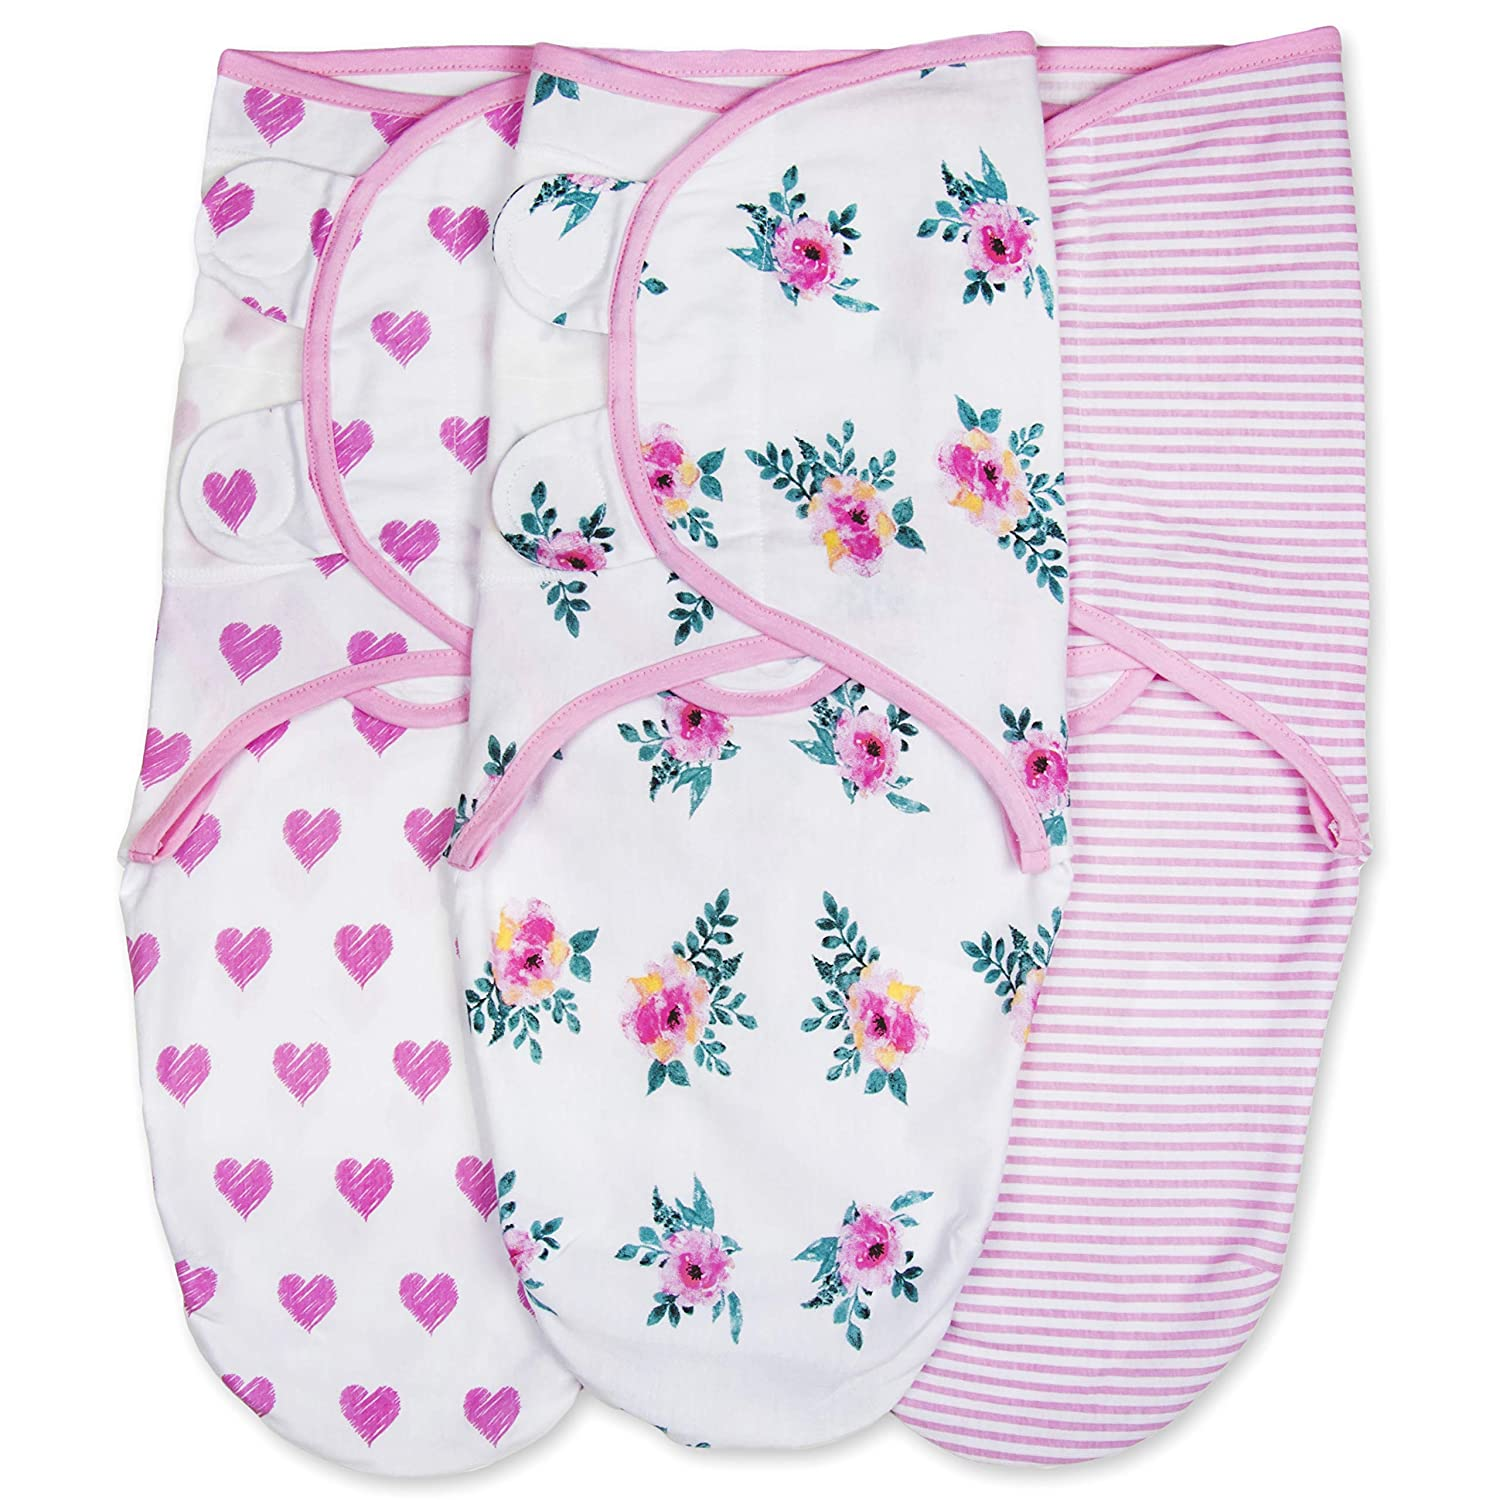 Emma + Ollie Swaddle Blanket Wrap Set of 3, Adjustable Infant Baby Swaddle Wrap Blanket, Pink Swaddle, Pink Flower, Pink Heart, Pink Stripe Swaddle Wrap, Gender Neutral Baby Shower Gift